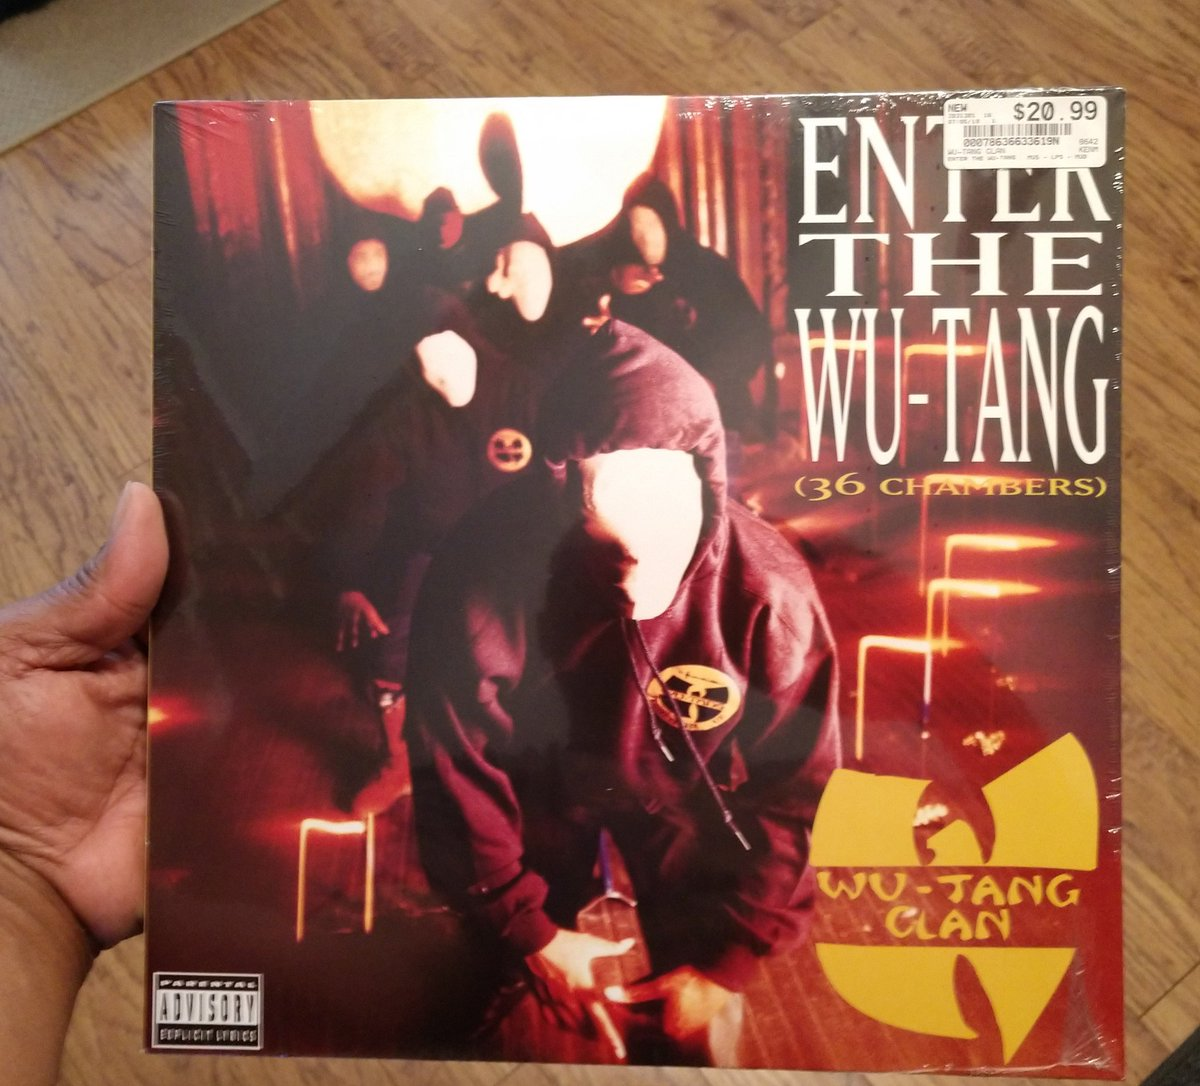 Found this gem yesterday on vinyl!! @WuTangClan #36Chambers